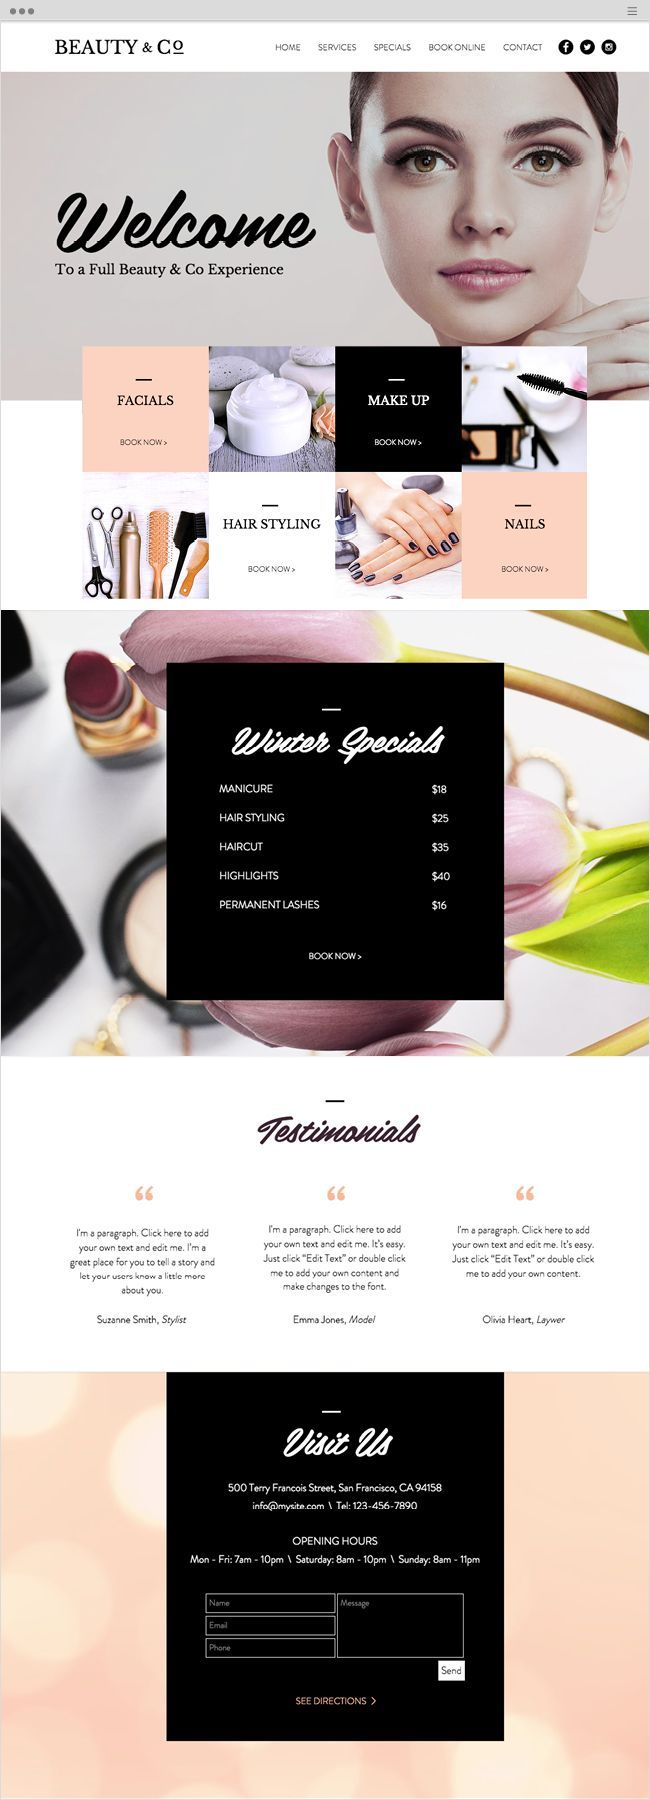 Great 010 Editor Templates Thin 1300 Resume Government Samples Selection Criteria Square 18th Birthday Invitation Templates 1st Job Resume Template Youthful 2014 Printable Calendar Template Purple24 Hour Timeline Template 25  Best Ideas About Salon Website On Pinterest | Website Design ..